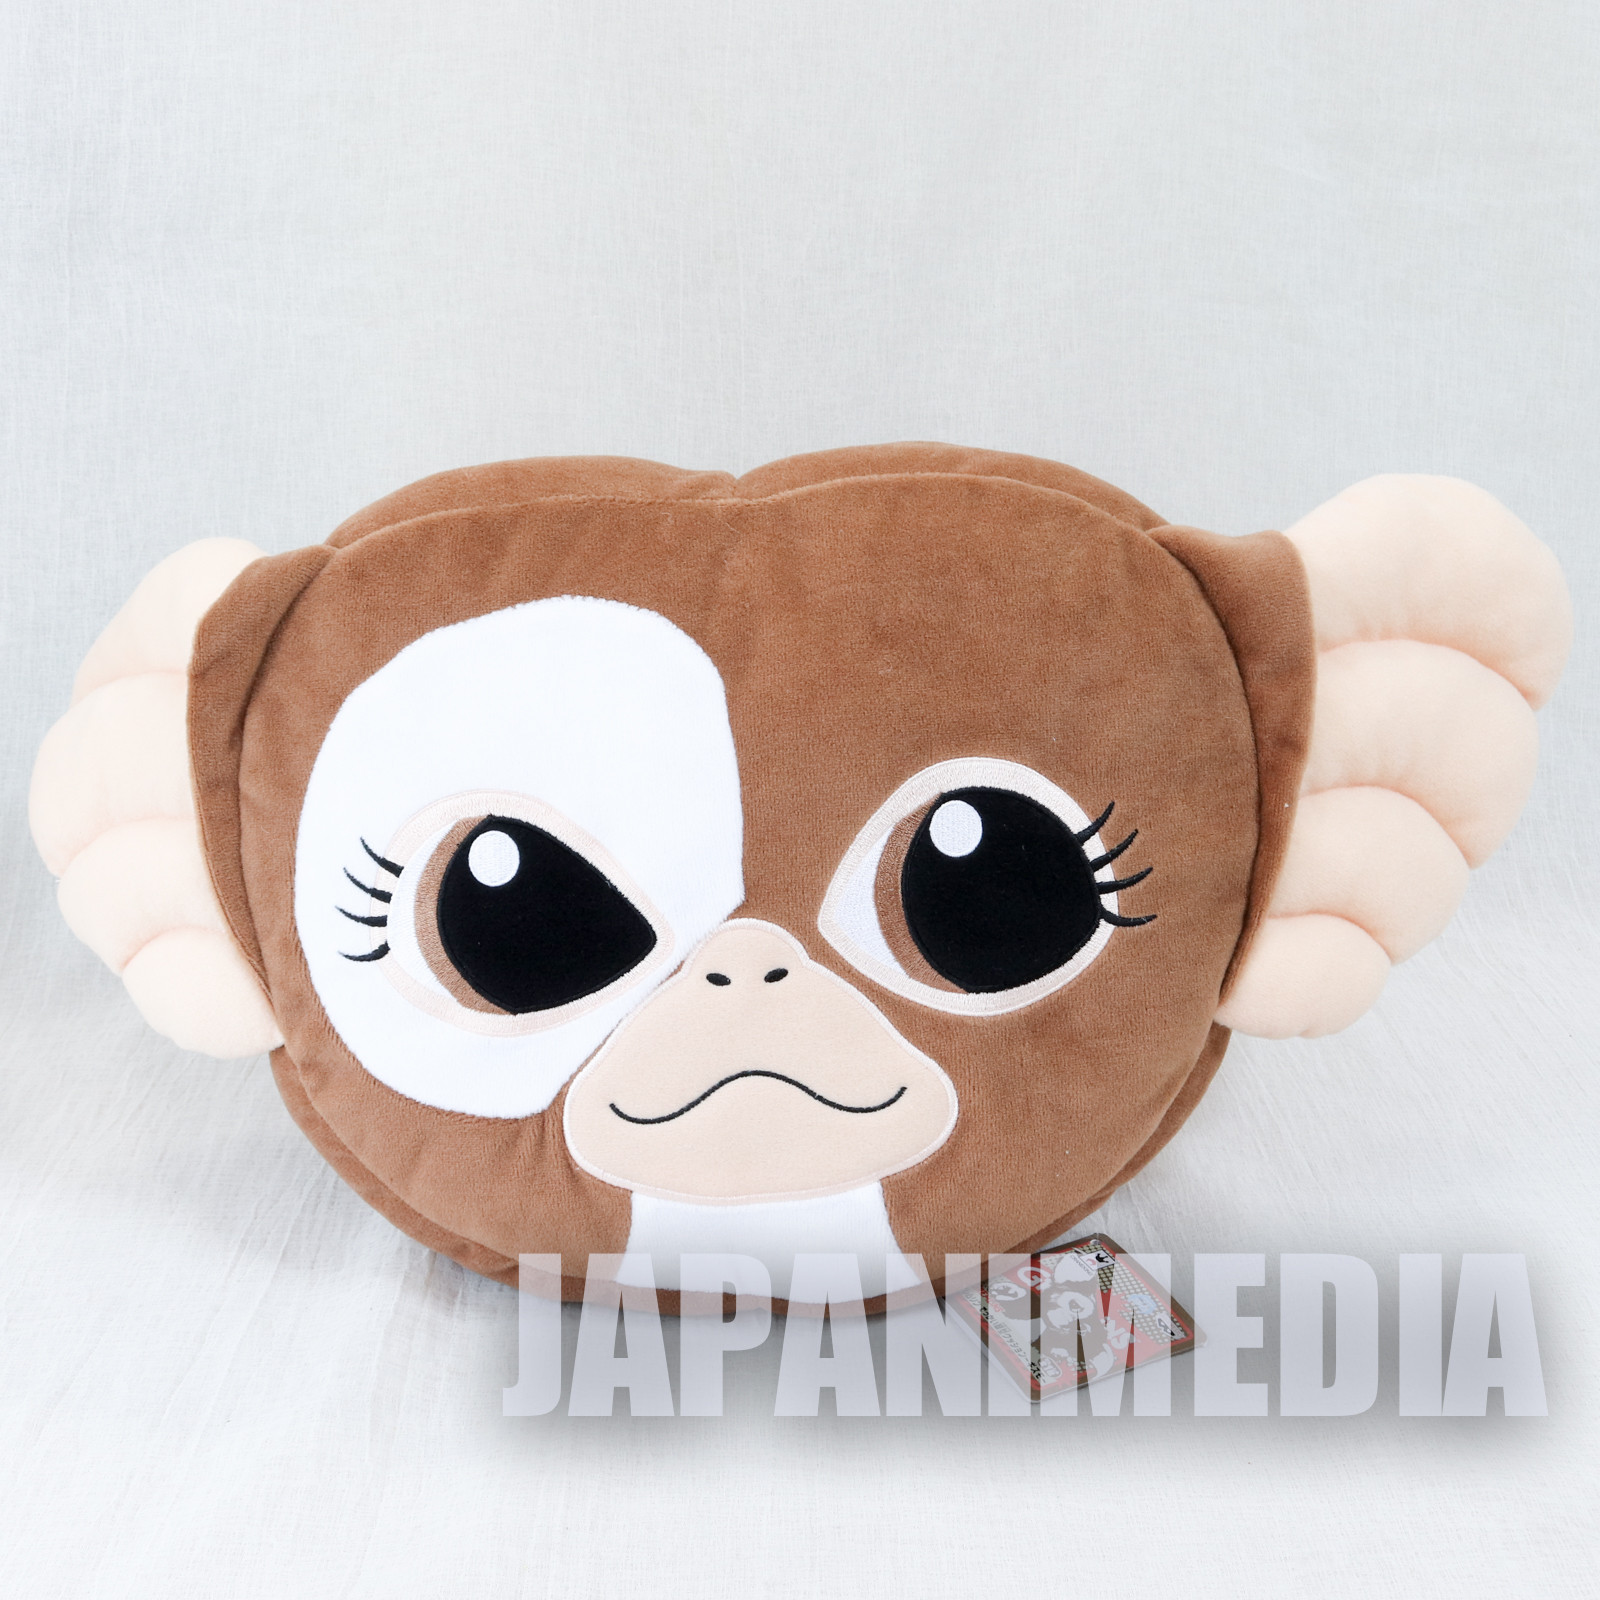 Gremlins Gizmo Face type Cushion Plush Doll